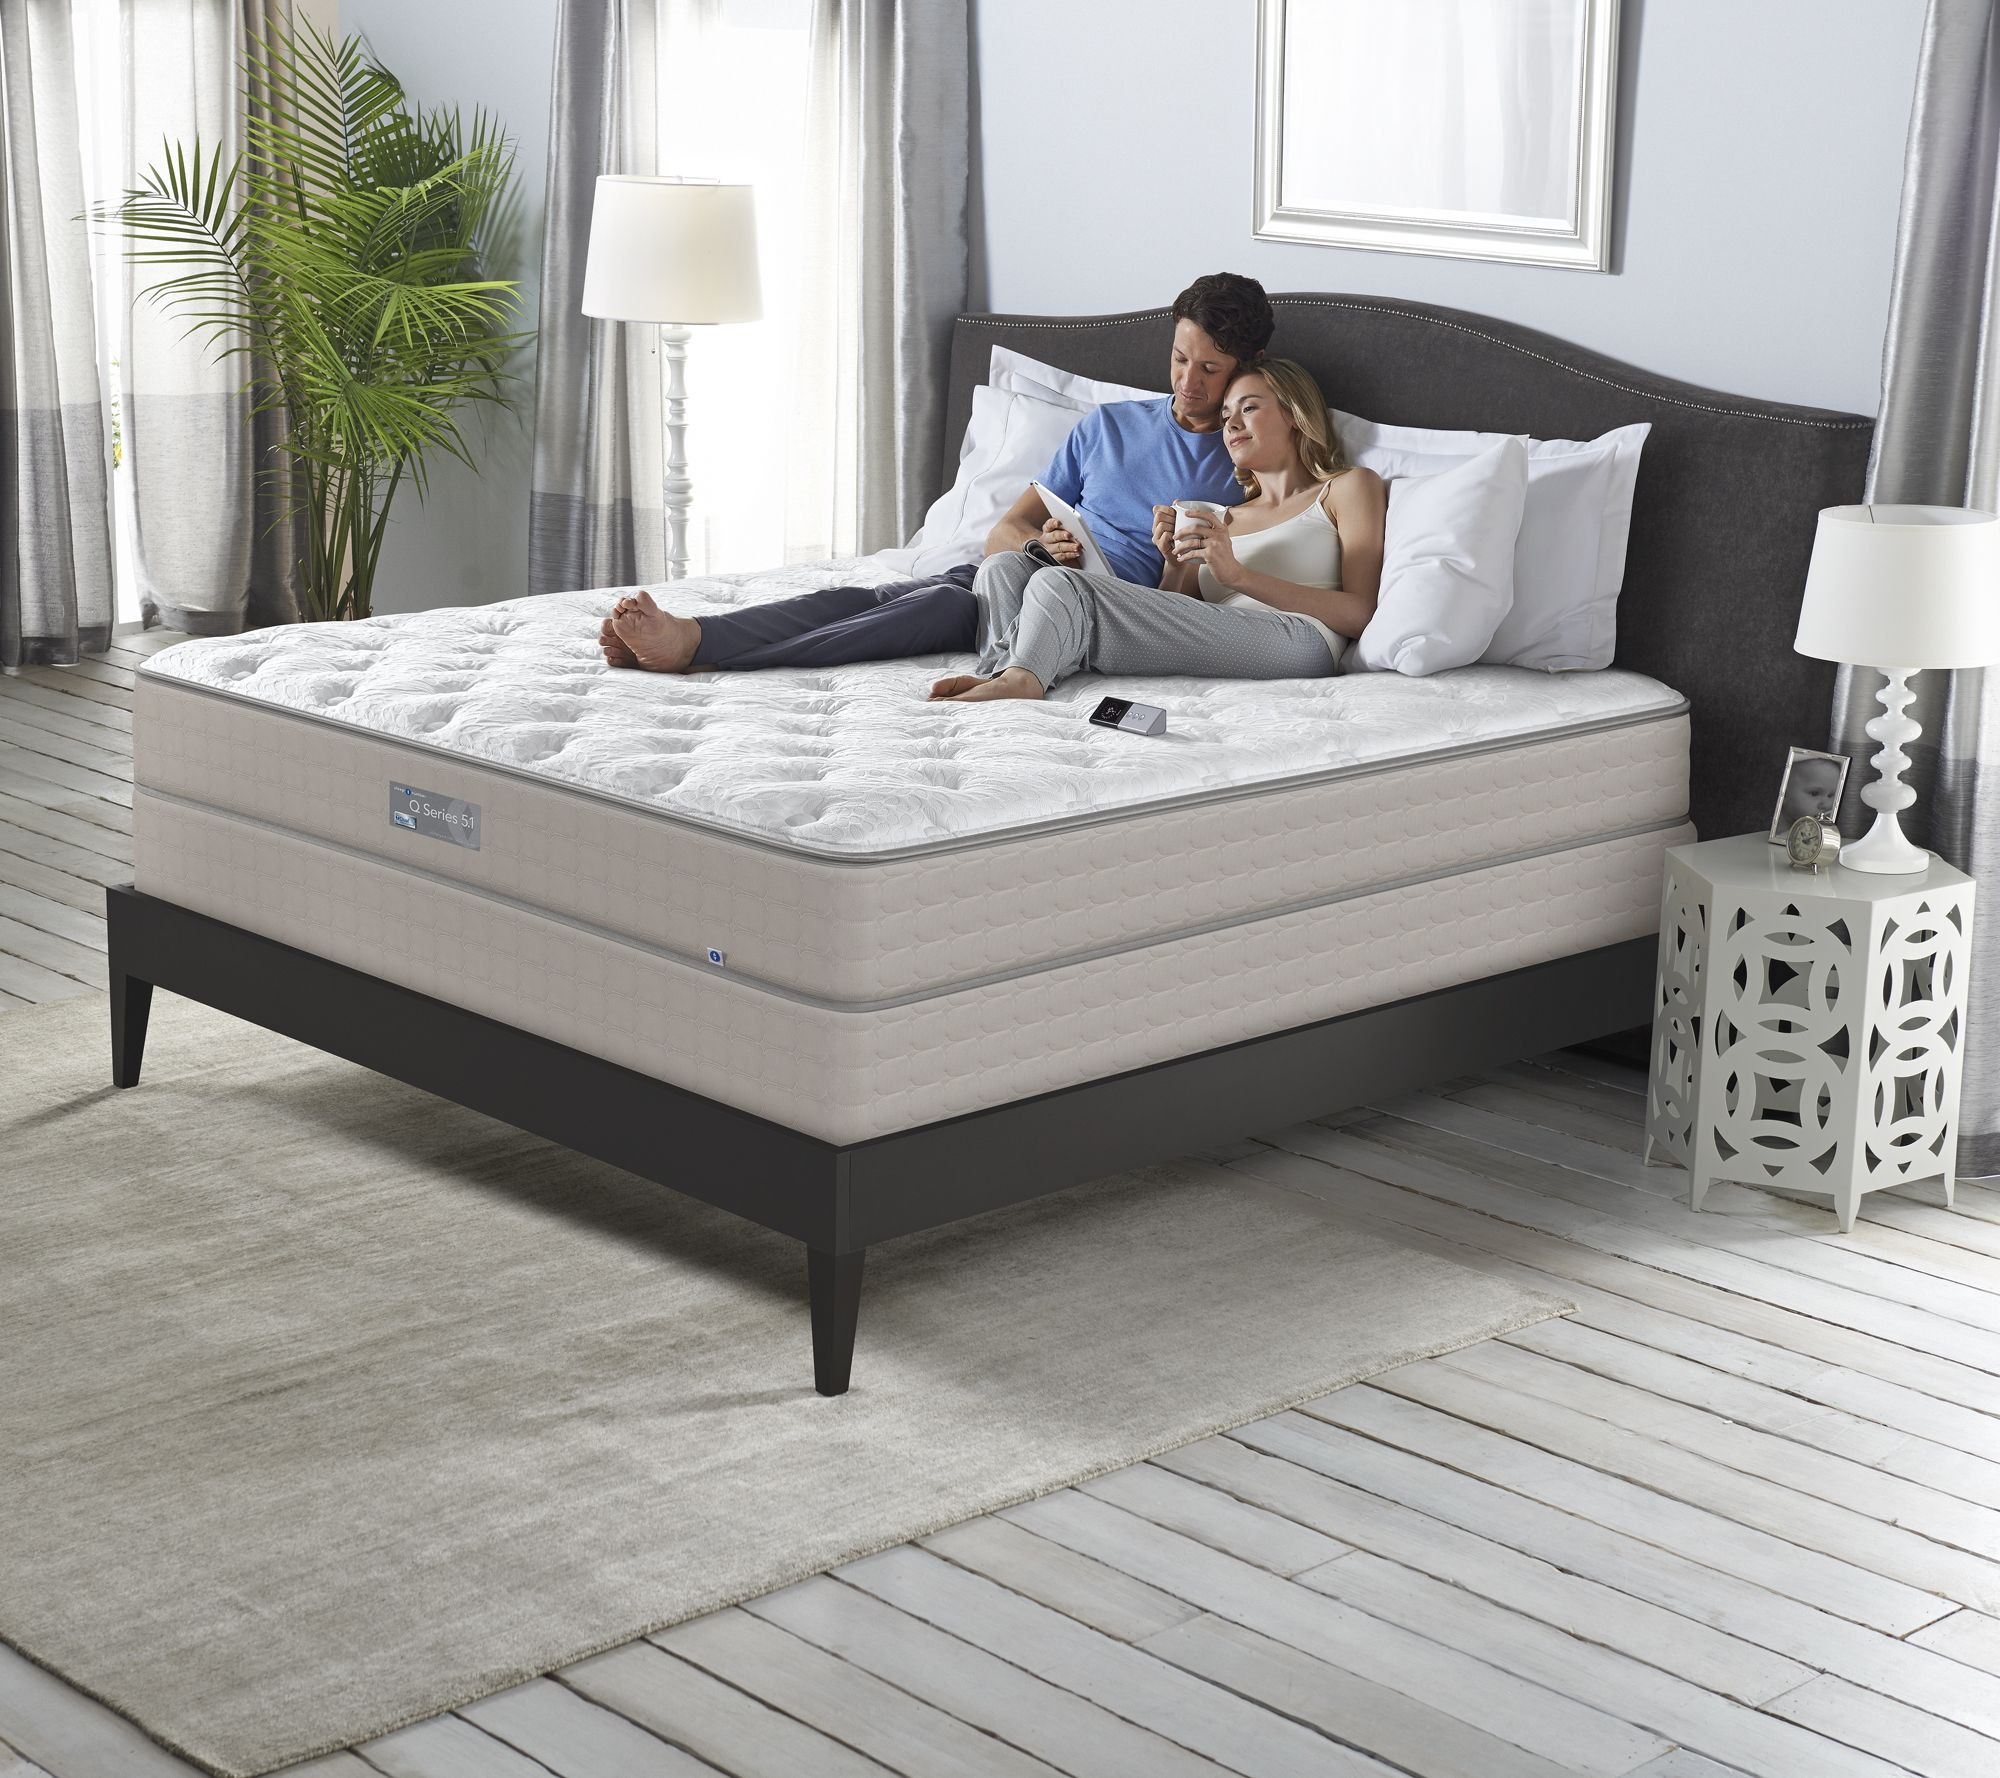 prices size bed dimensions much frame number adjustable base a is how with king sleep